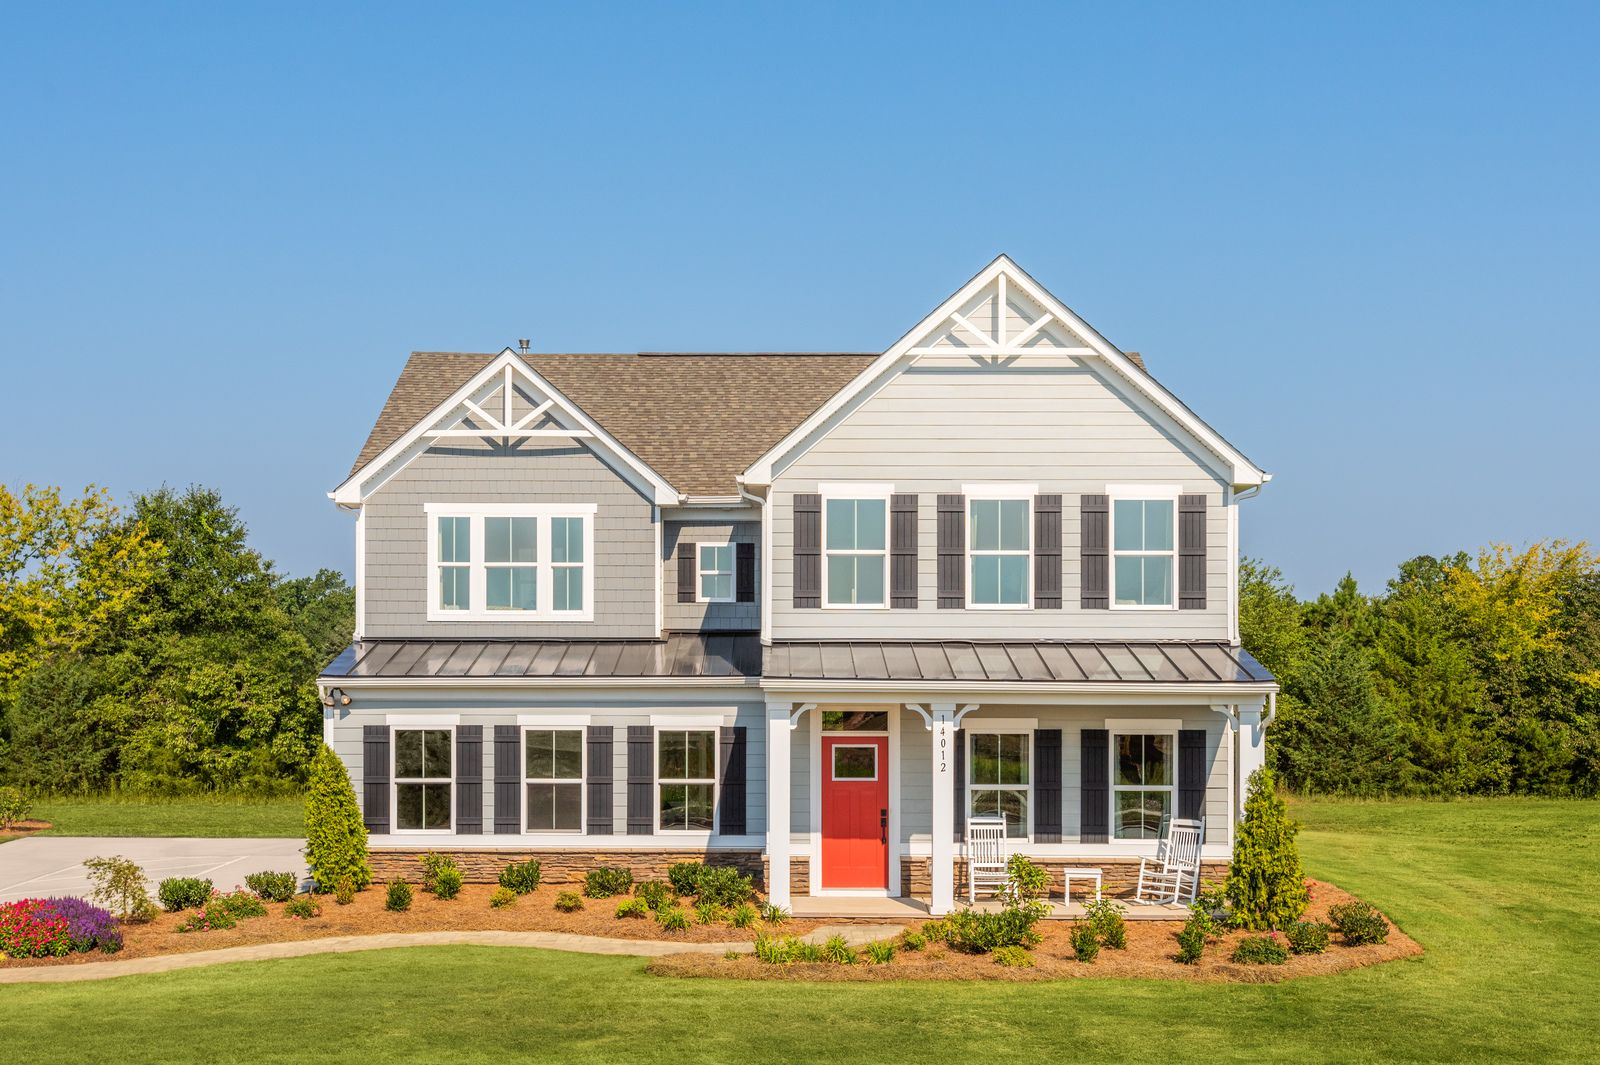 ADELINE ESTATES IN FREDERICKSBURG FROM THE MID $500S:A quiet enclave of only 24 homes on 1.5+ acre homesites located within the Mountain View school district with easy access to Rte. 17 & I-95.Schedule your visit today!